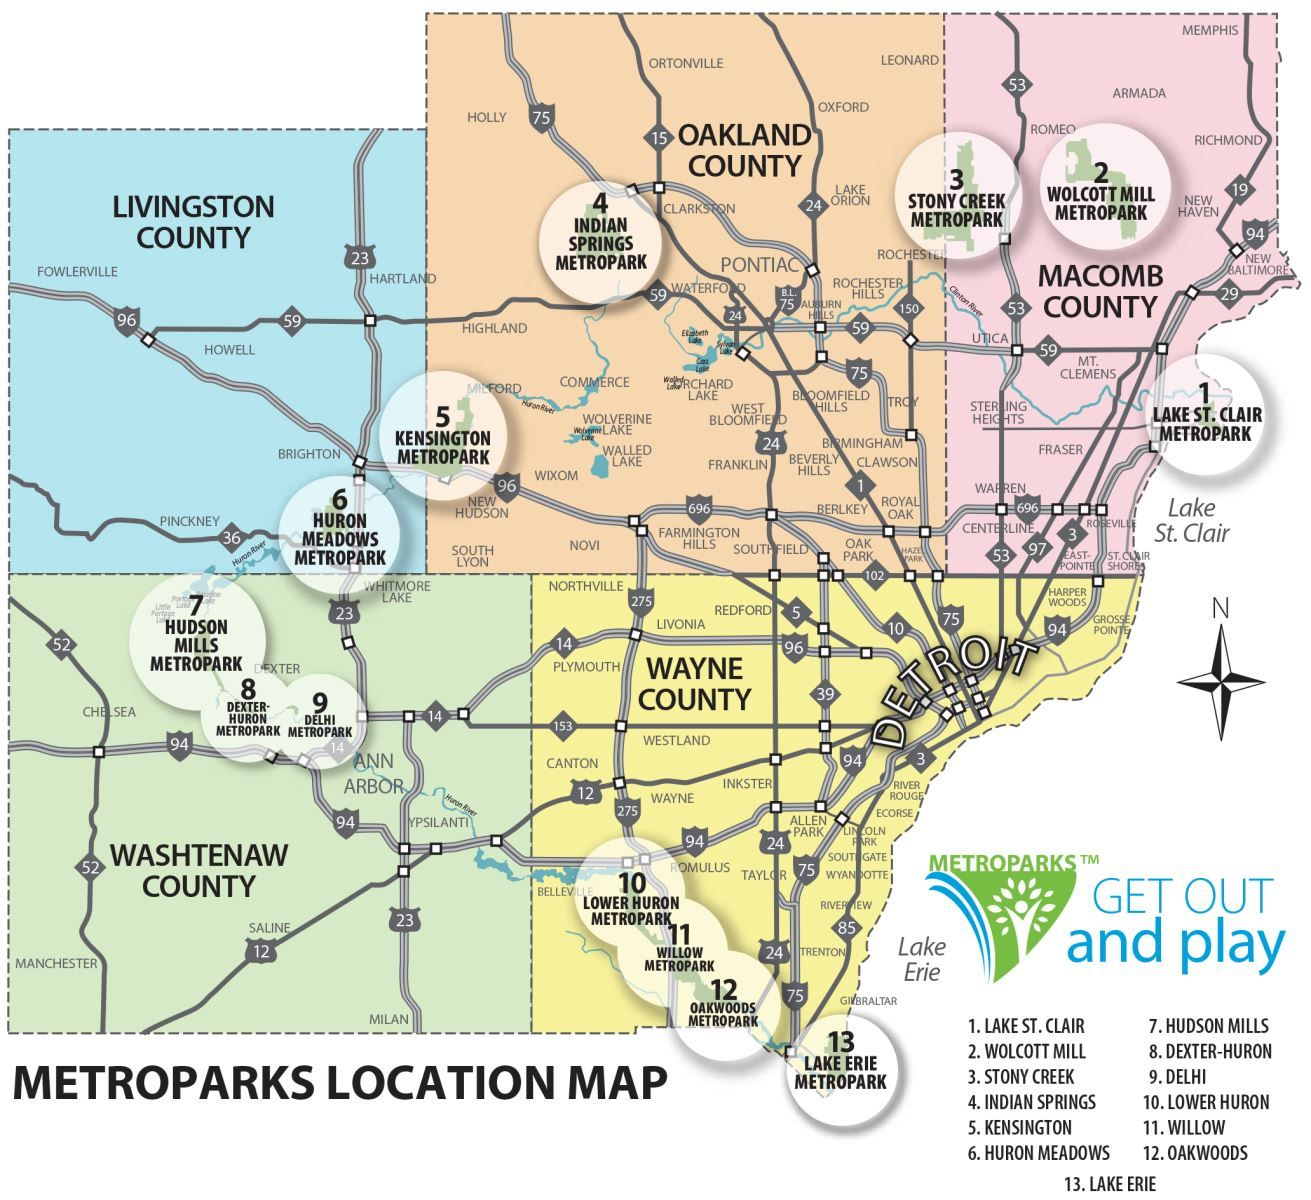 Metro Detroit Park Locations : Metropark Maps~ Indian Springs And  Kensington Are Close To Home